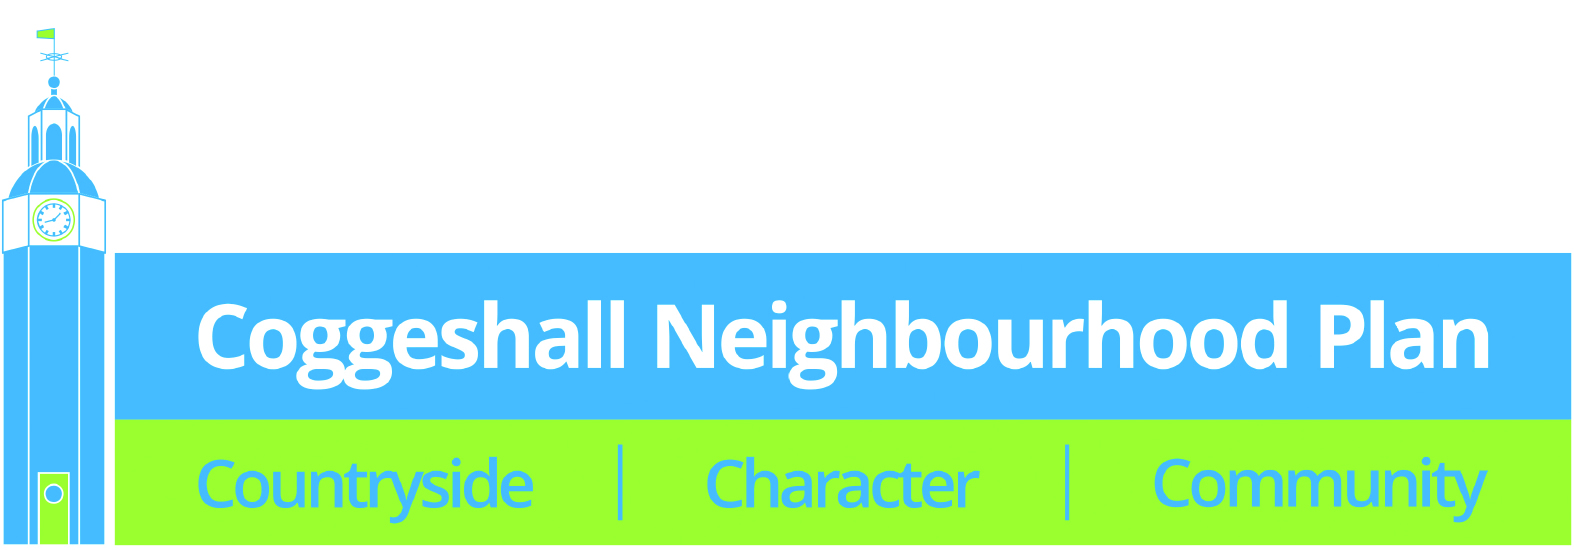 Coggeshall Neighbourhood Plan